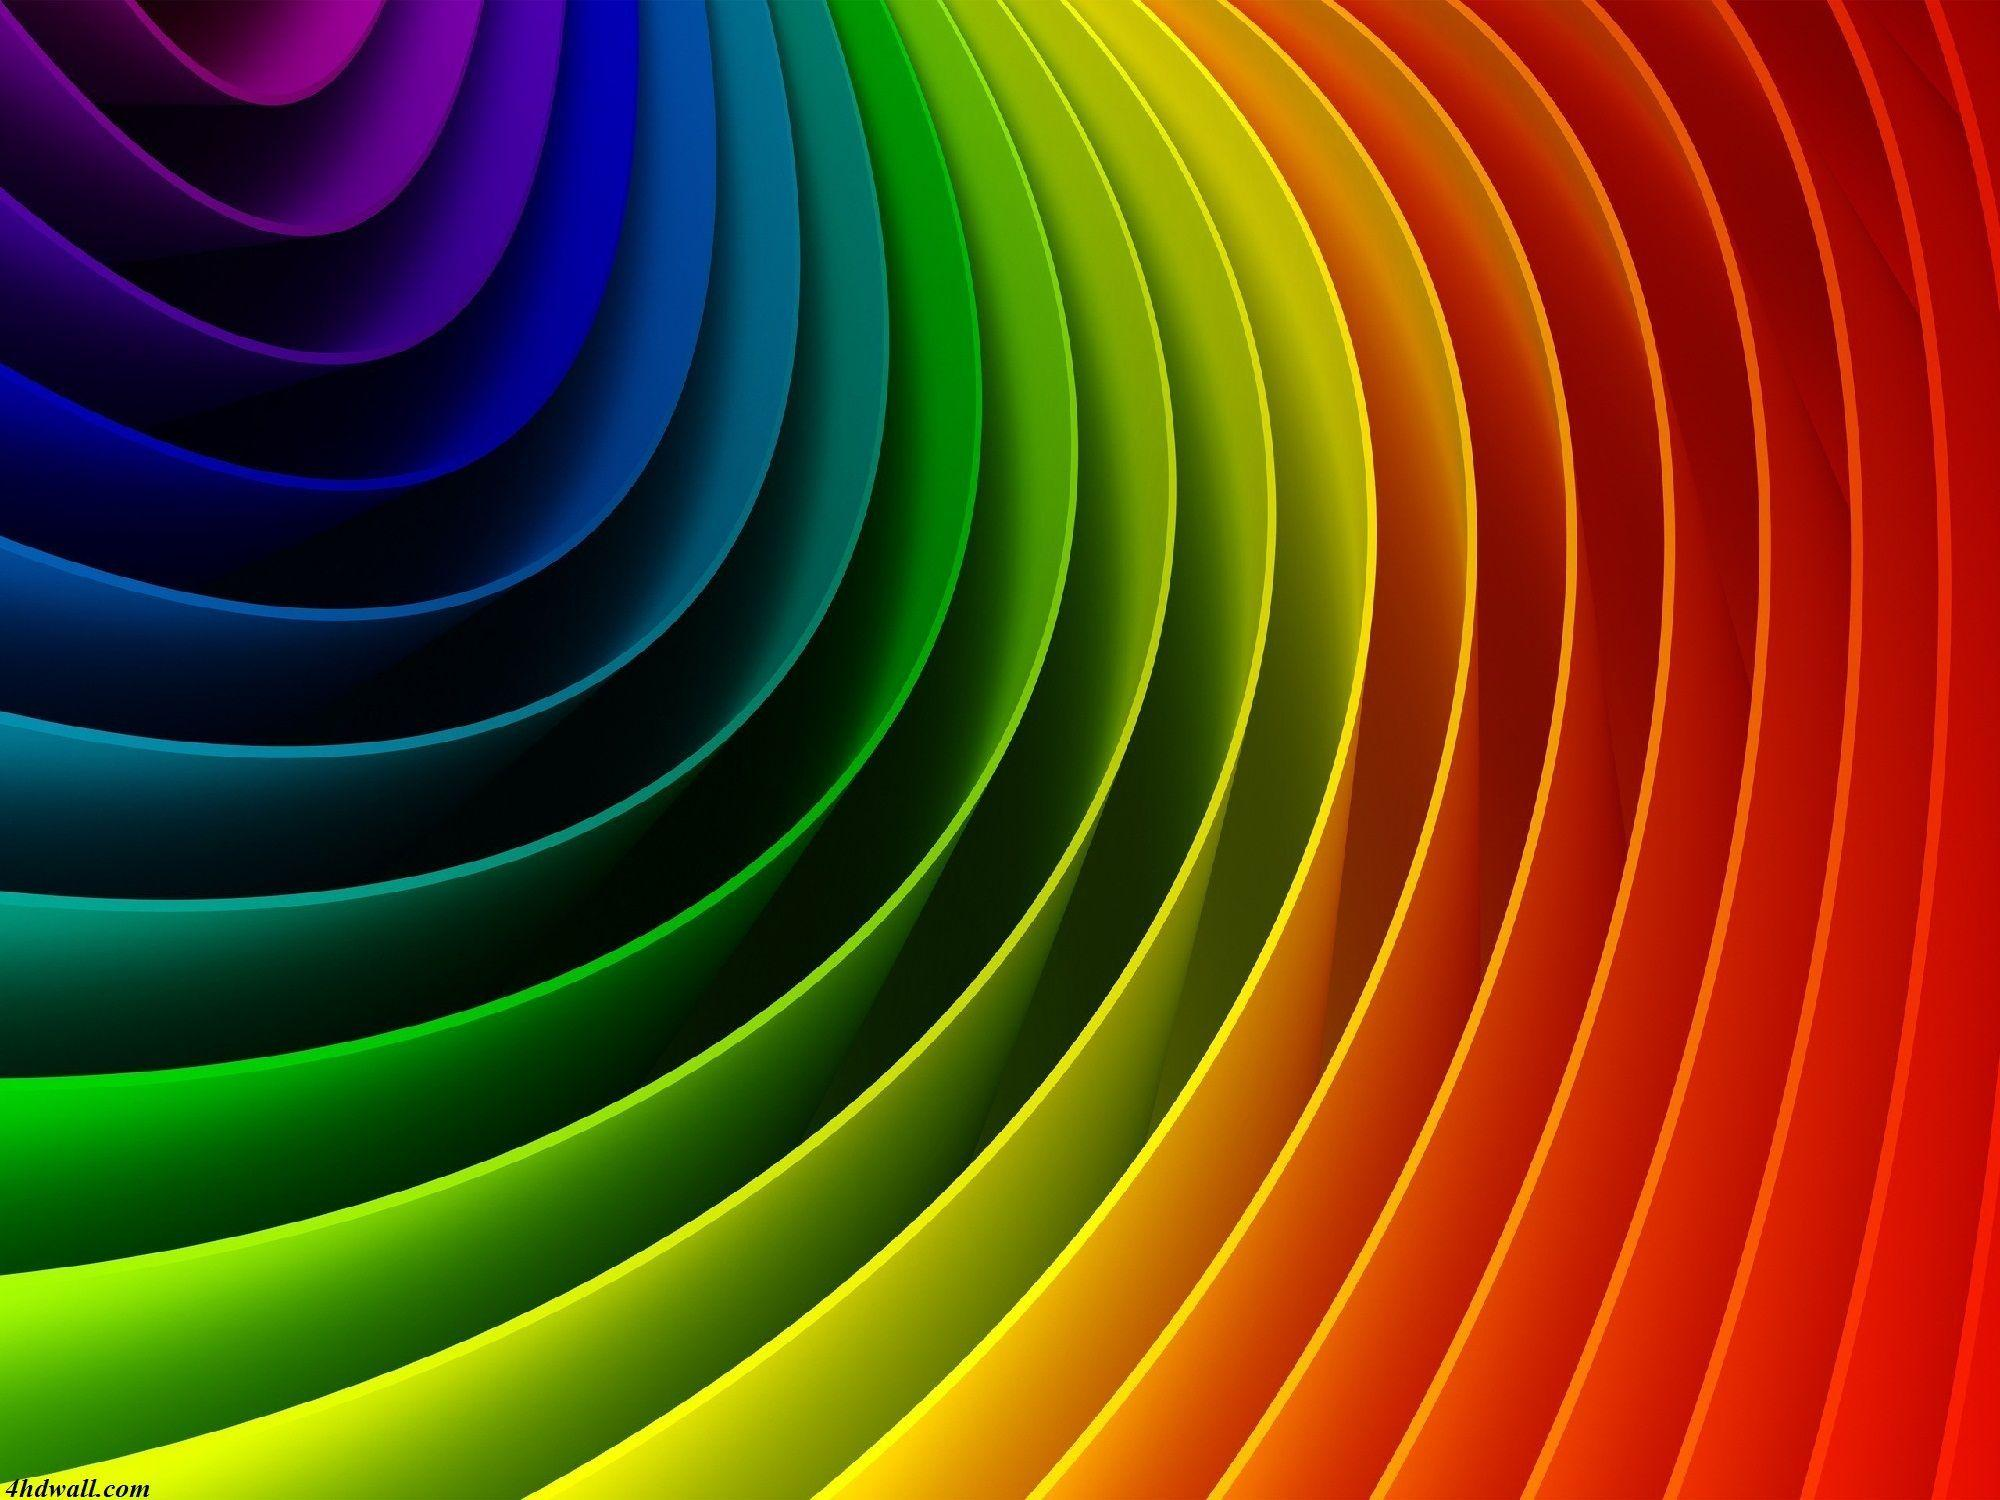 Wallpapers Colorful - Wallpaper Cave